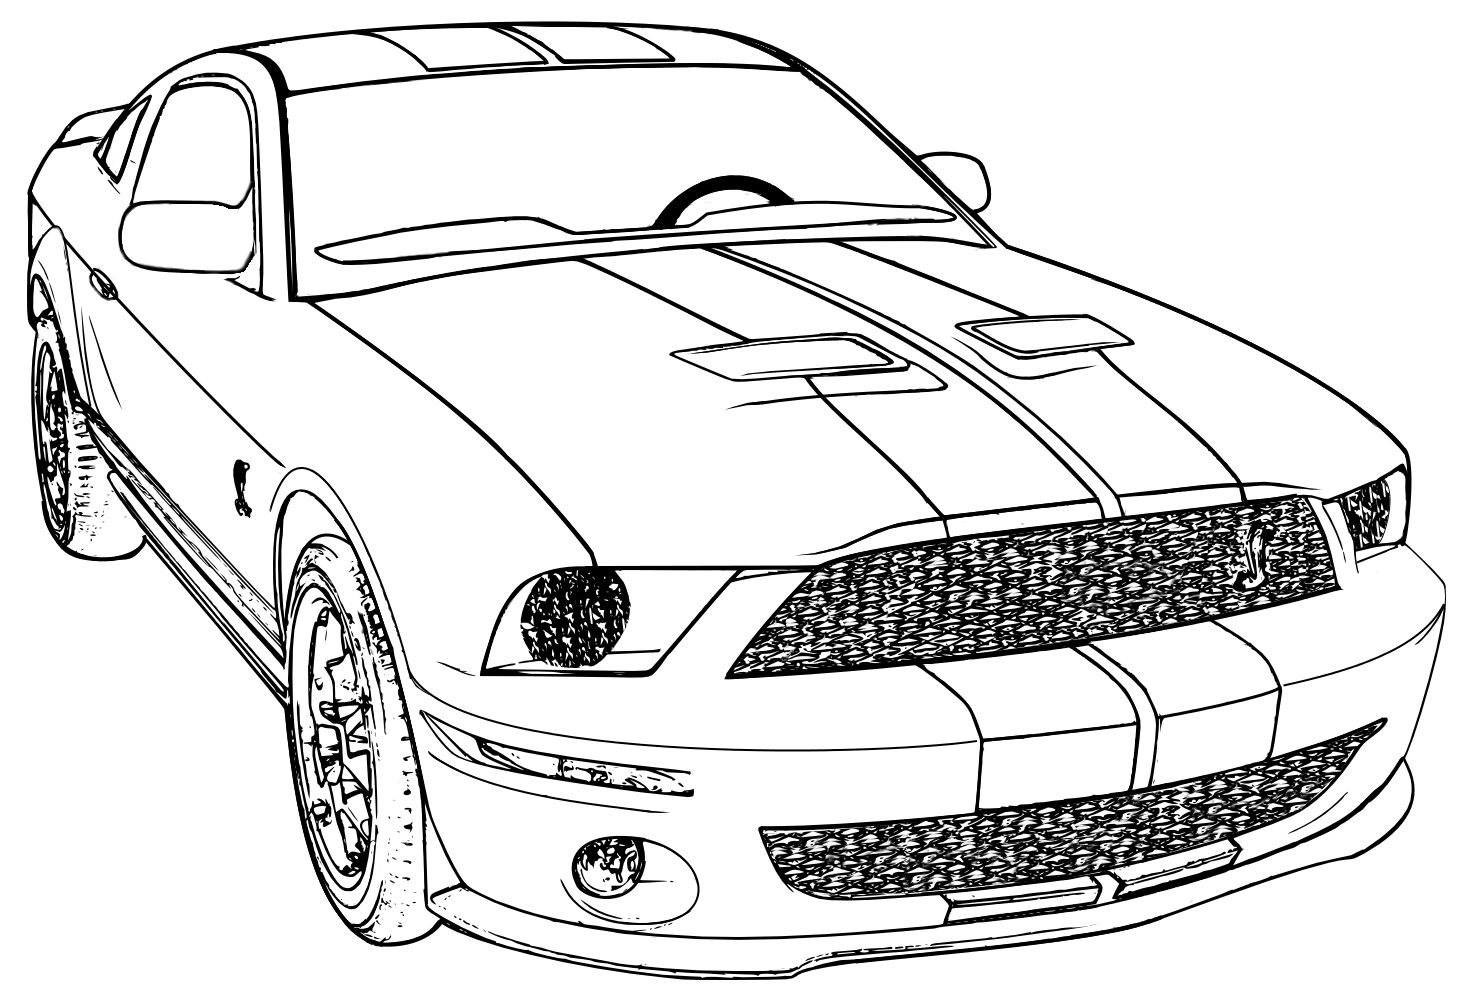 cars colouring pages to print disney cars coloring pages printable best gift ideas blog print colouring cars to pages